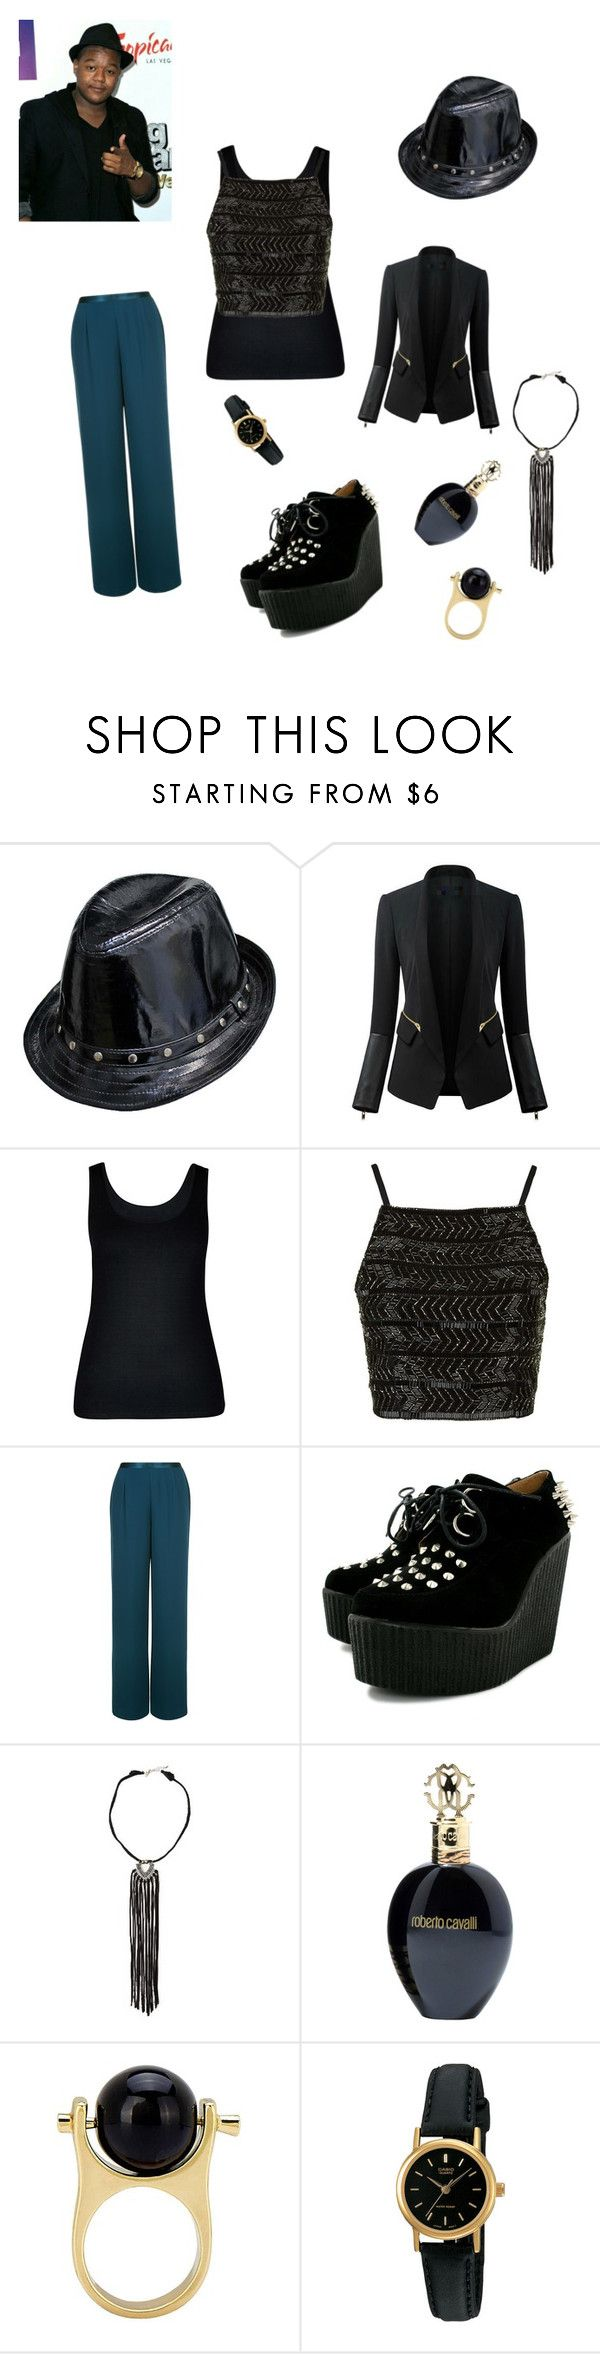 """""""Kyle Massey aka Cory from Cory In The House"""" by mahayla-huff ❤ liked on Polyvore featuring Chicsense, City Chic, Topshop, Jacques Vert, American Eagle Outfitters, Roberto Cavalli, Casio, women's clothing, women and female"""